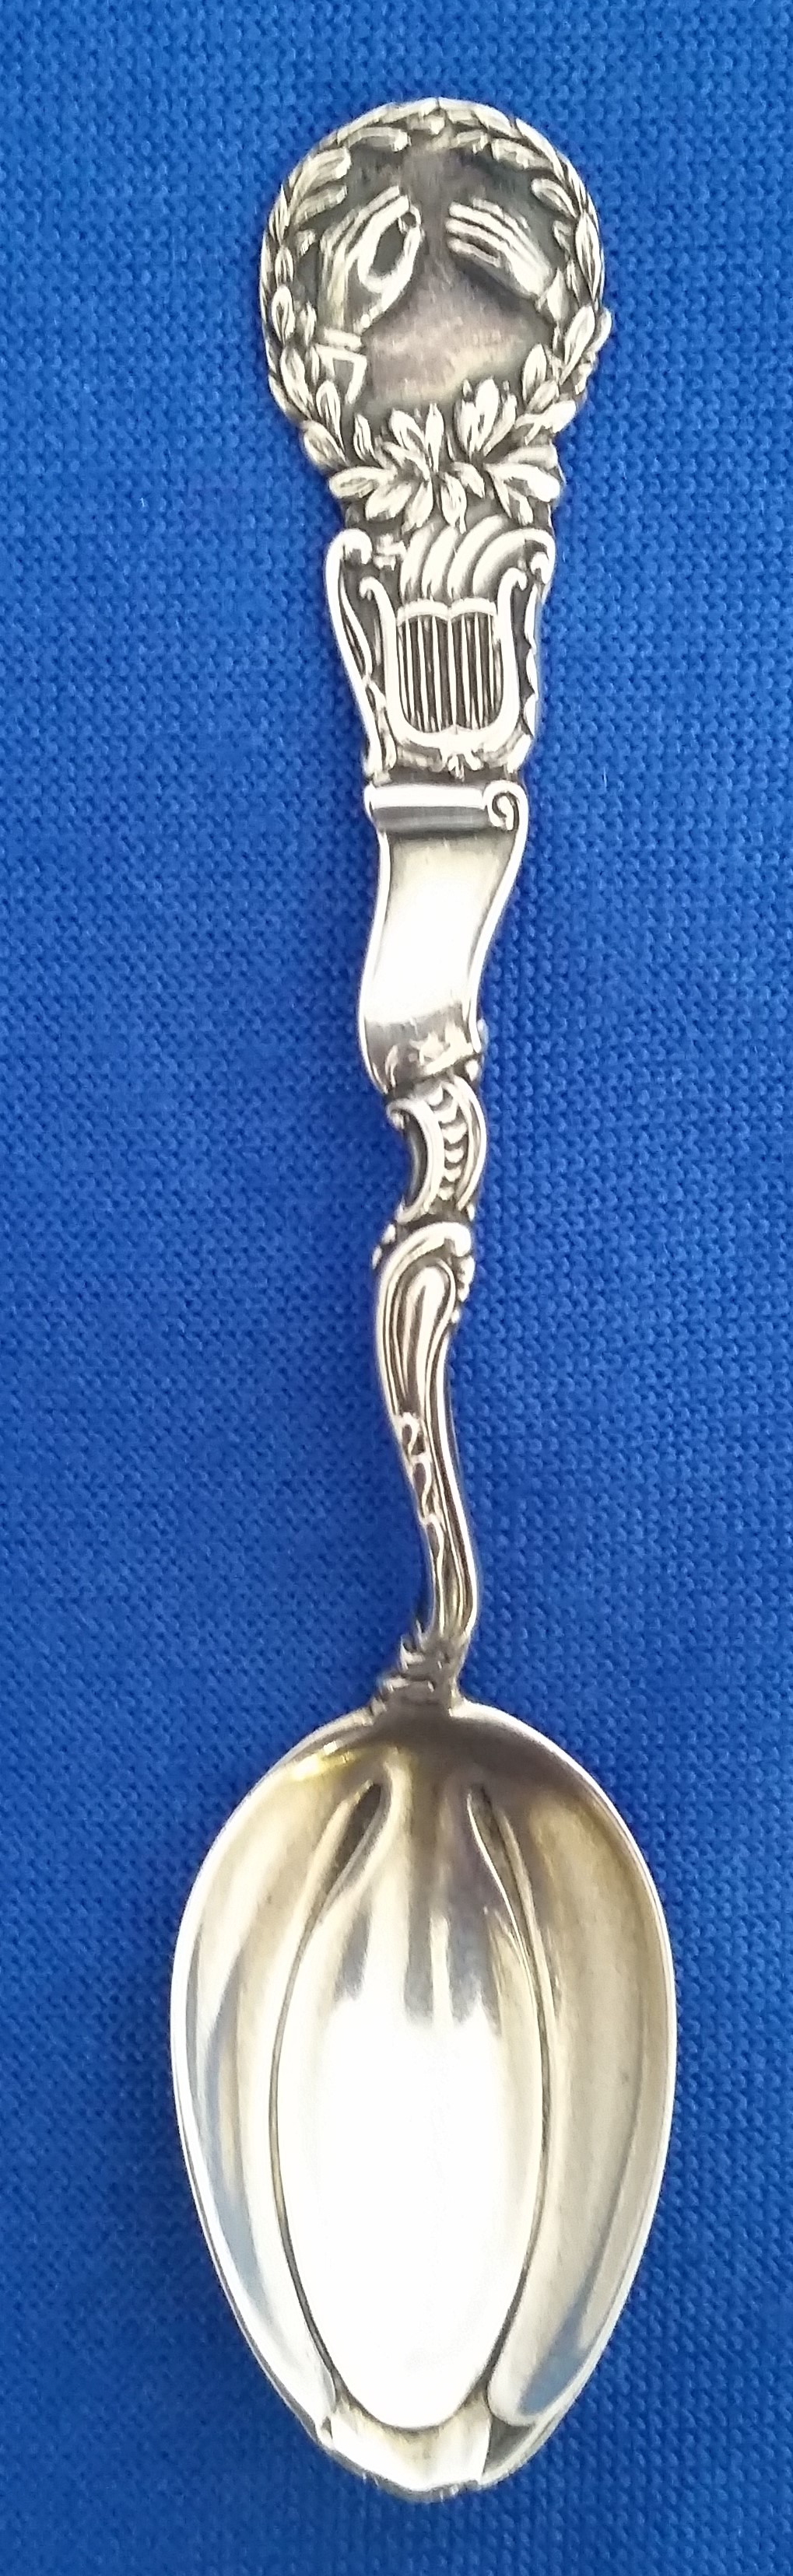 Simons Bros. Co. - 'Wedding' - Demitasse Spoon